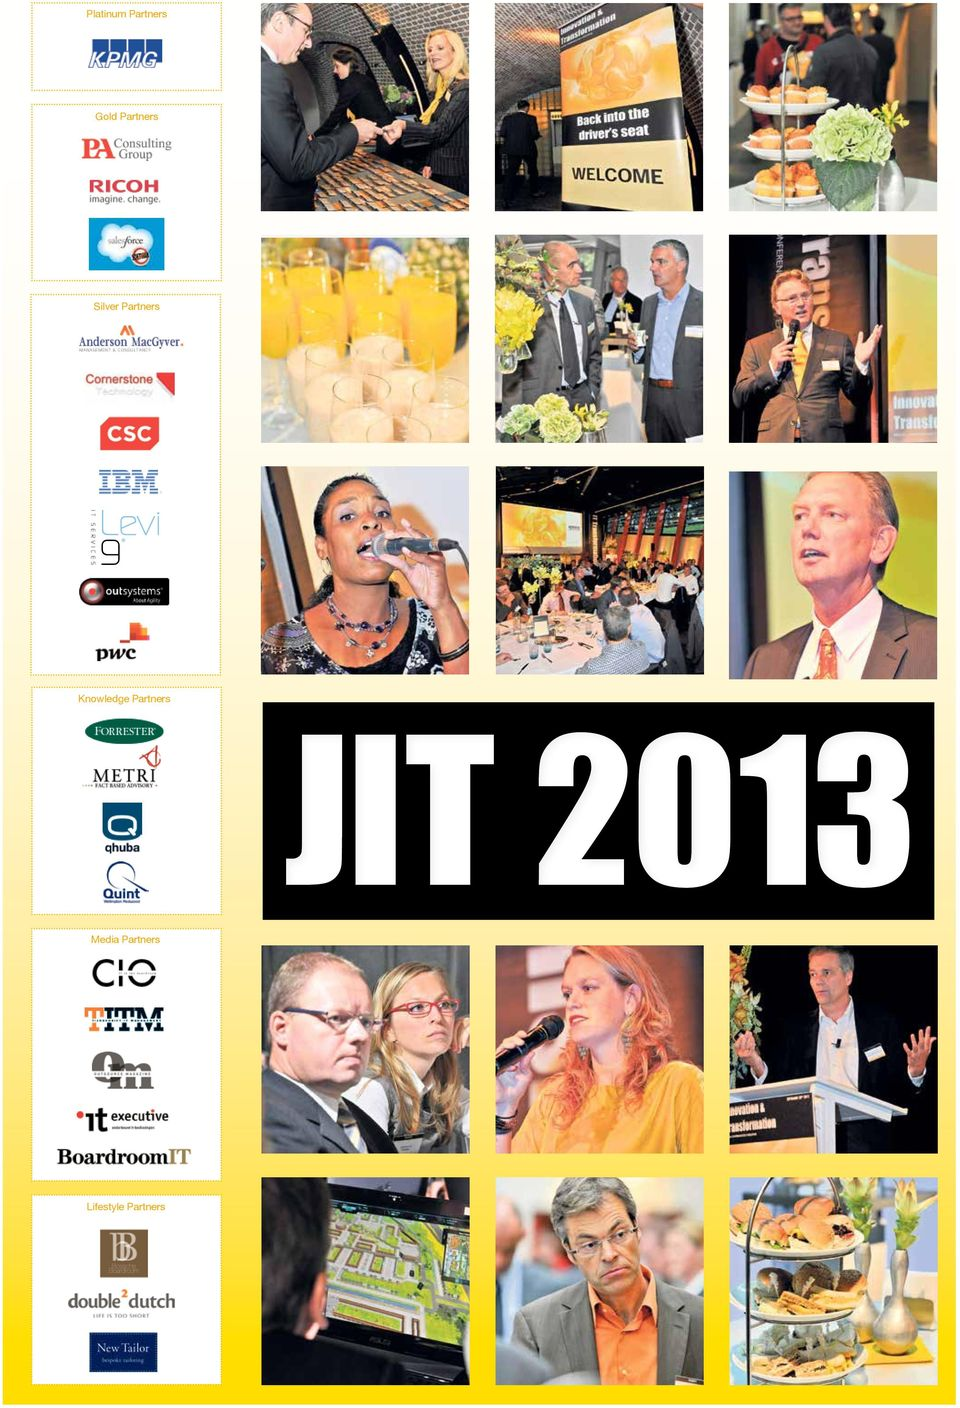 Knowledge Partners JIT 2013